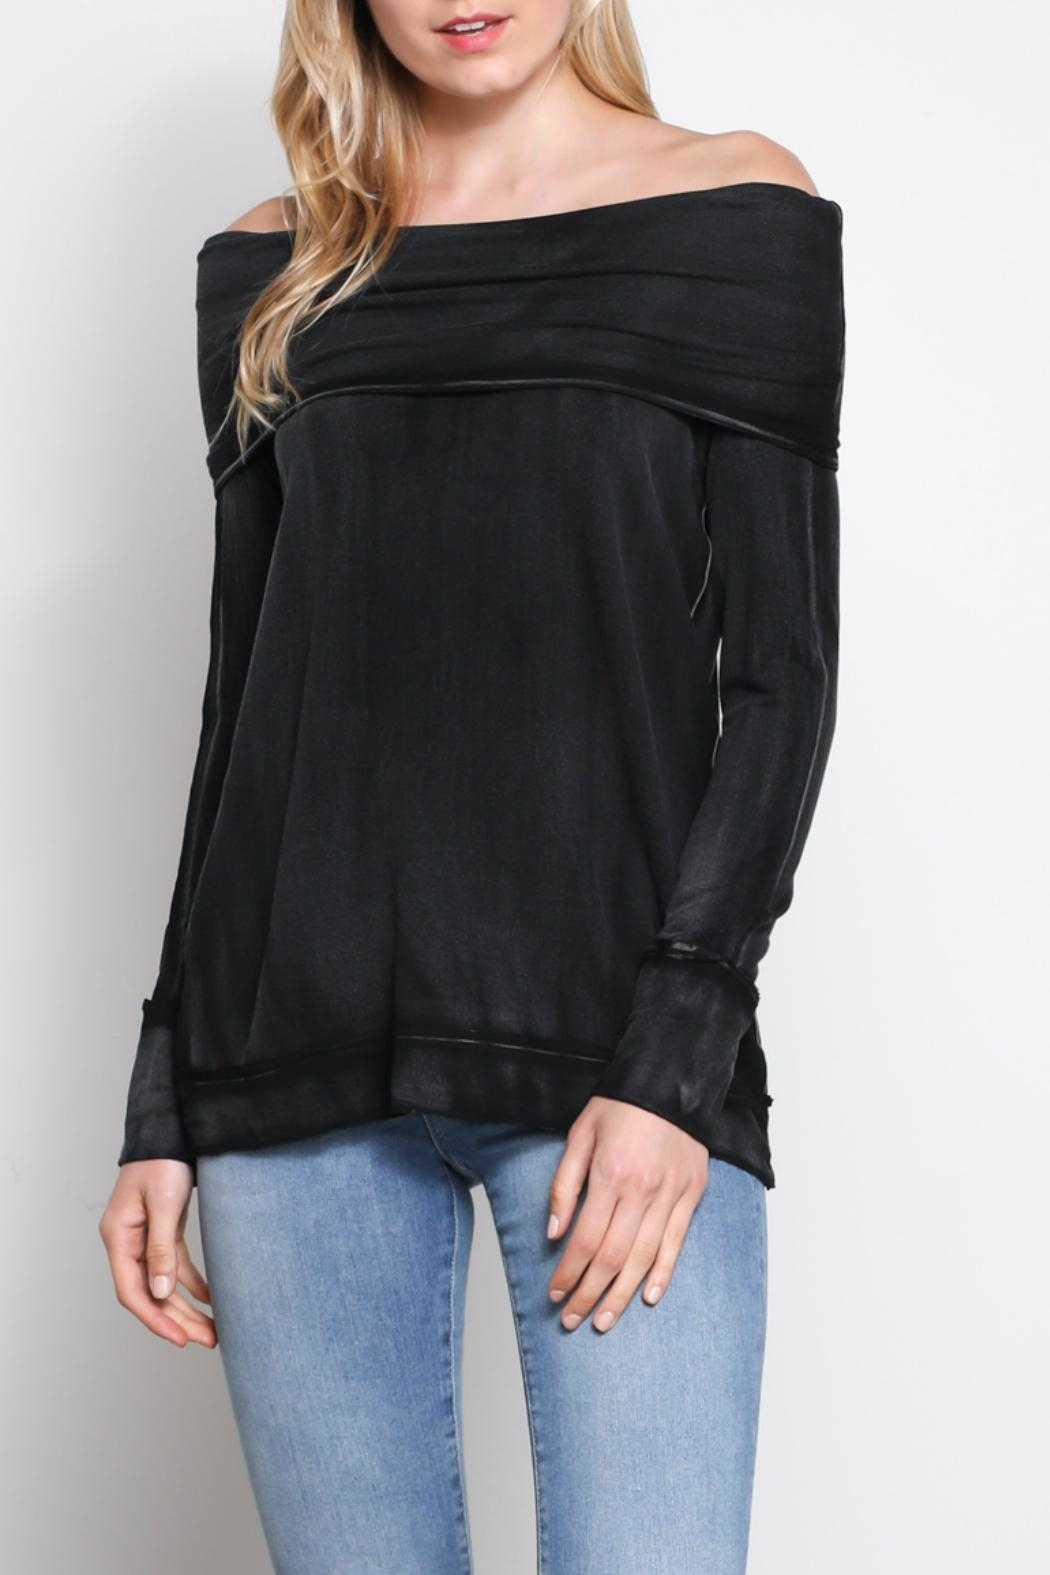 Mustard Seed Folded Off-The-Shoulder Top - Main Image